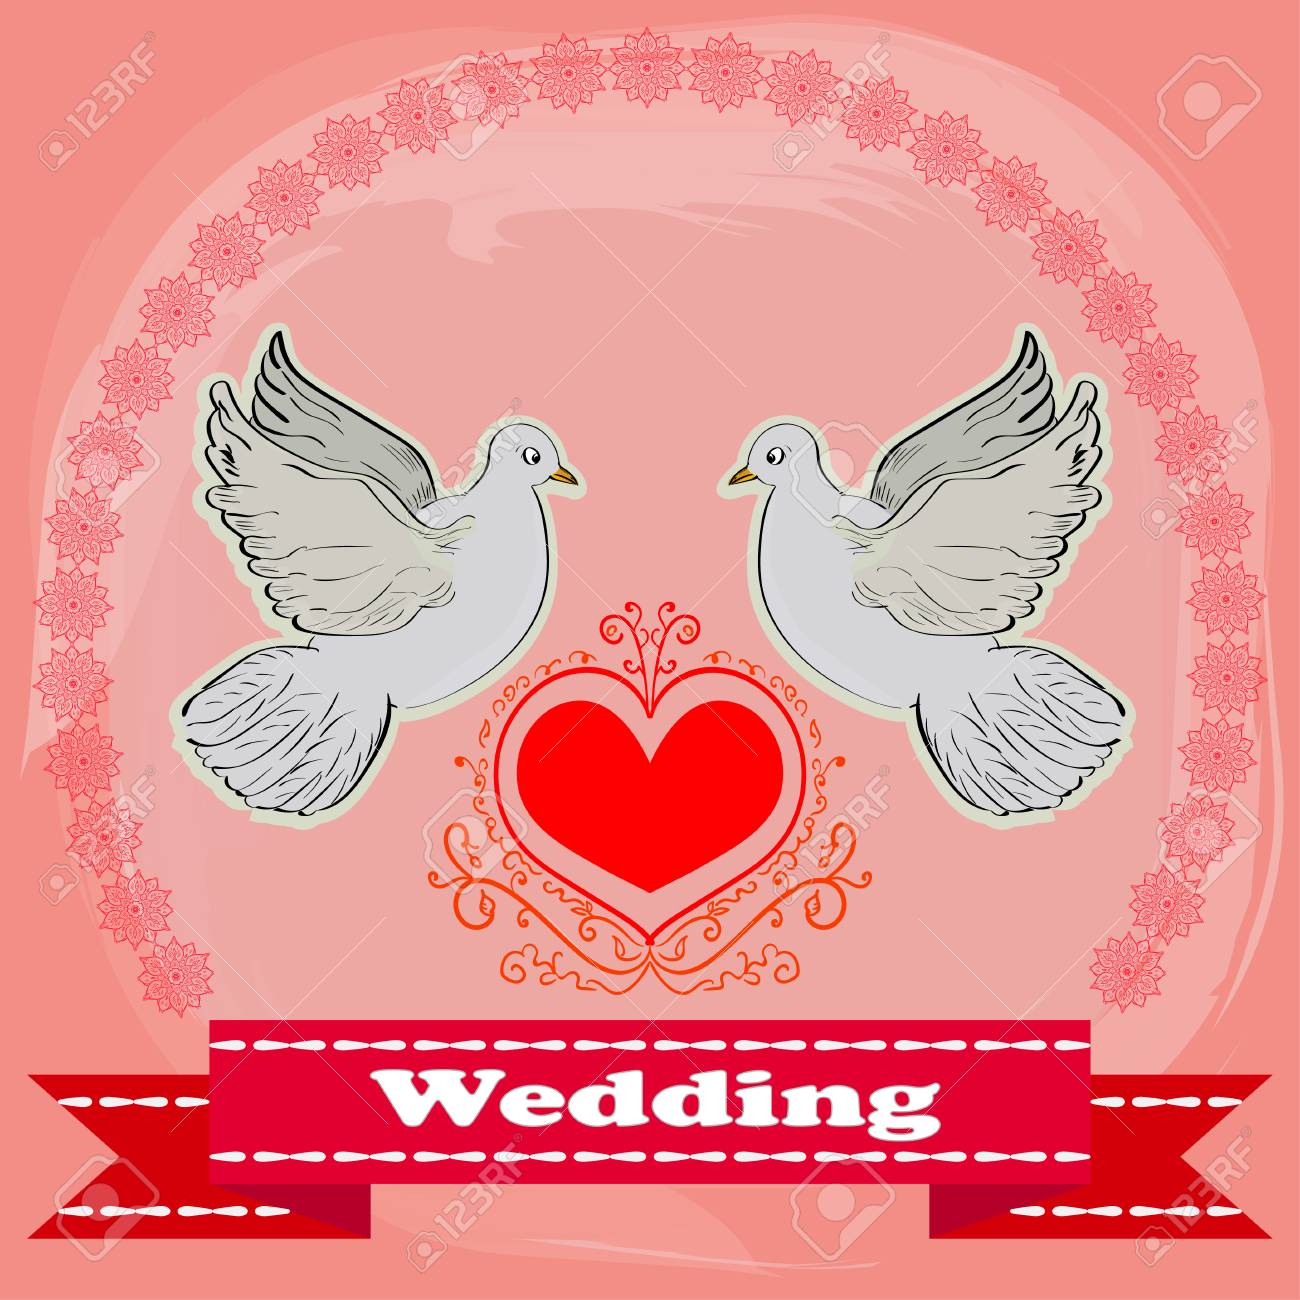 The Invitation To The Wedding. Wedding Card With Two Doves. Floral ...